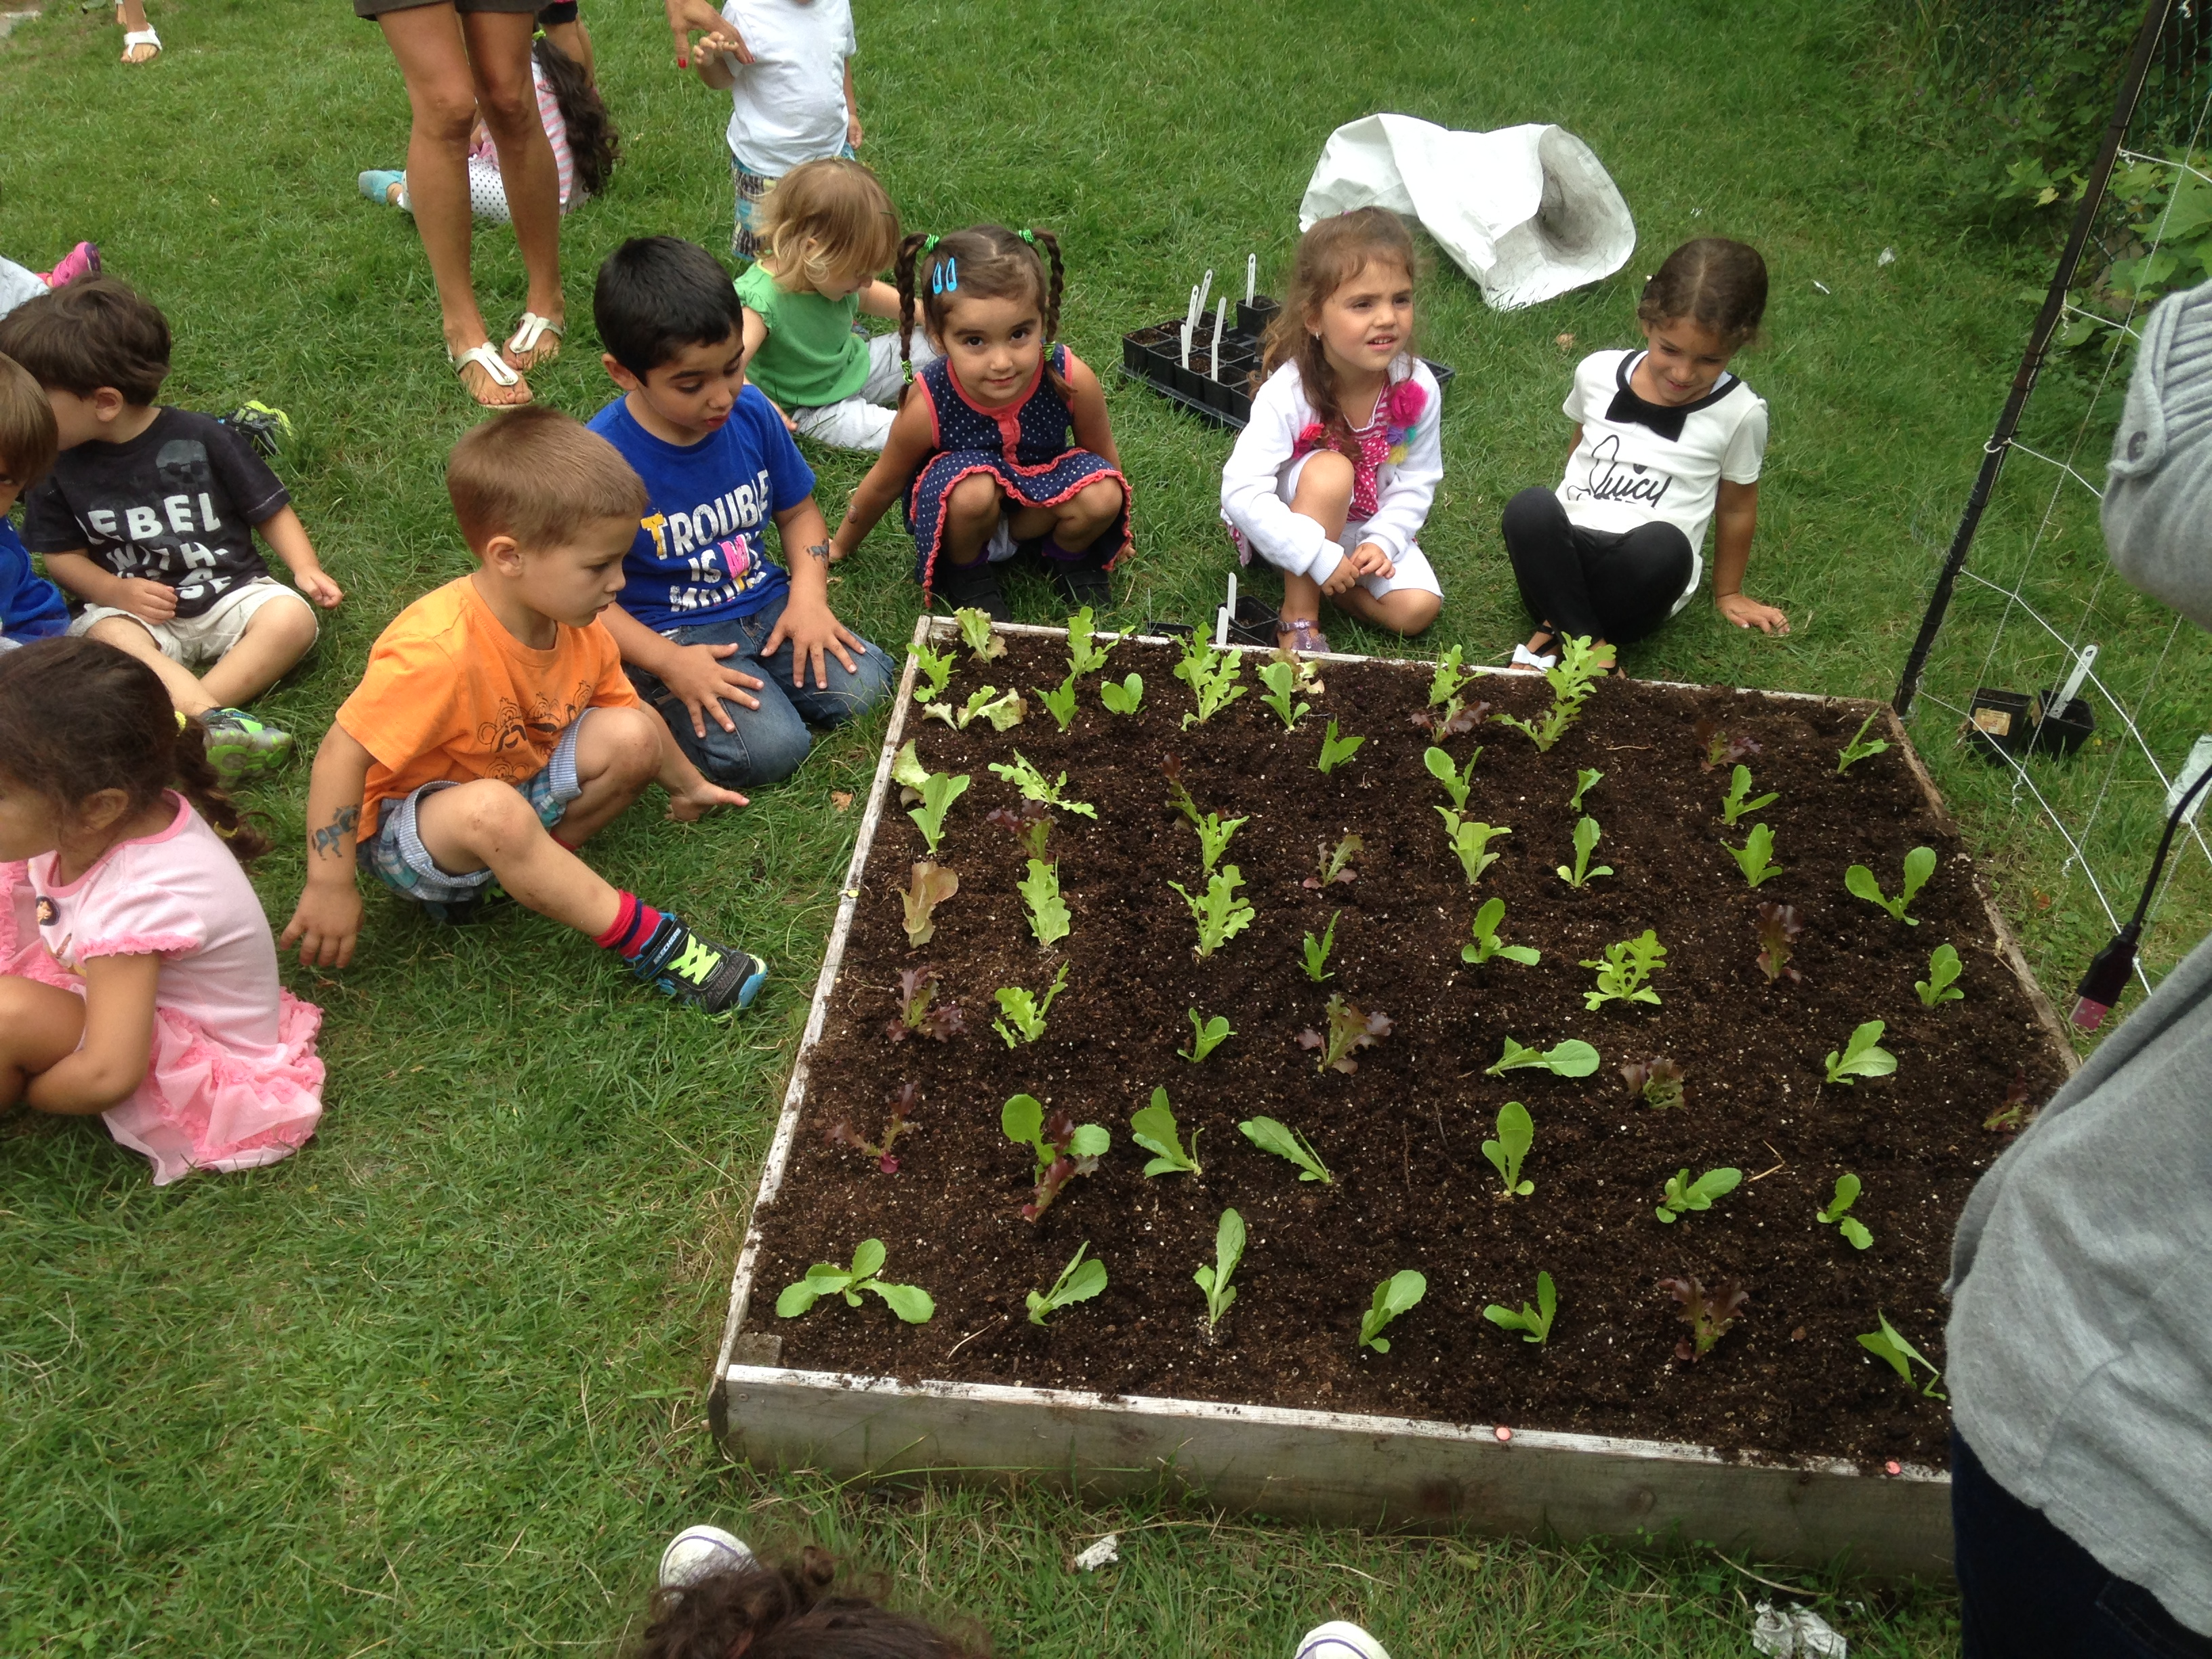 kids love to dig in the dirt school vegetable gardens - Vegetable Garden Ideas For Kids